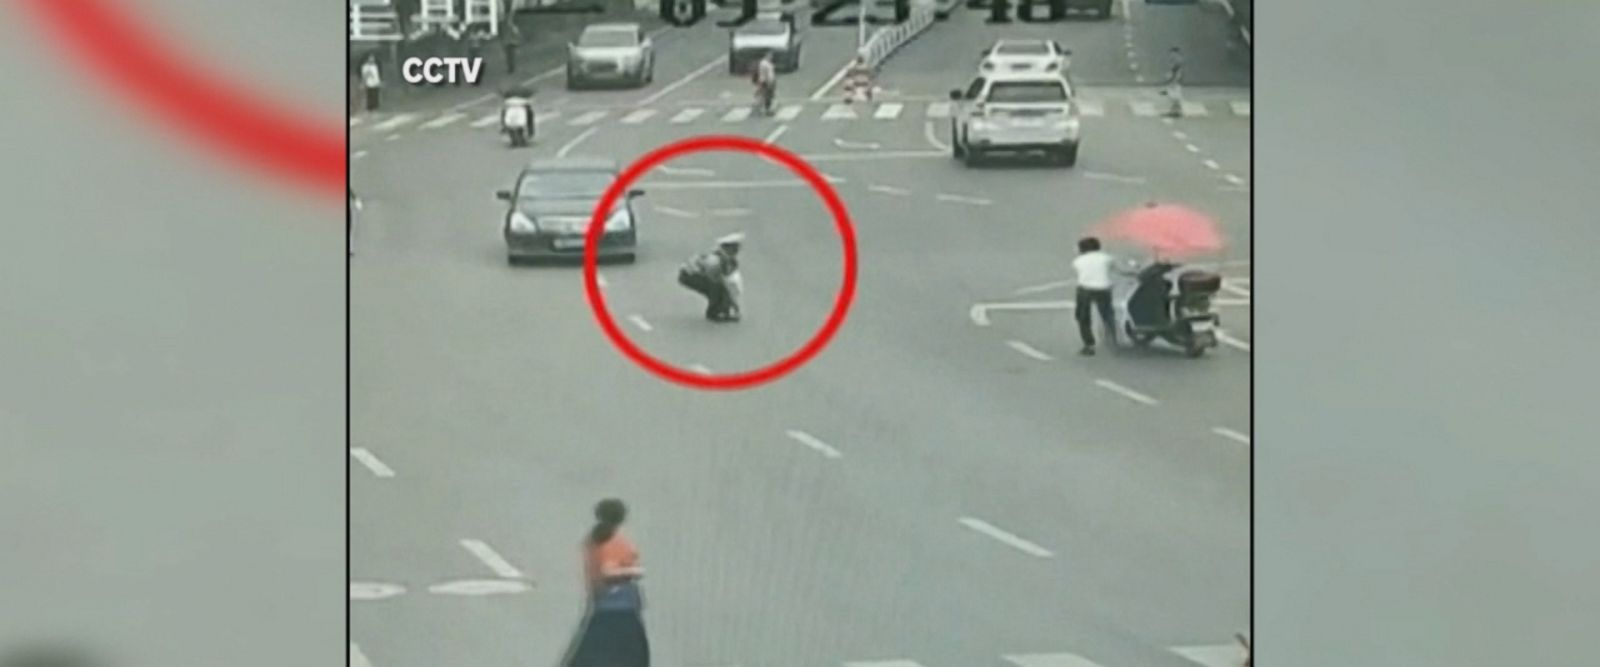 A police officer in China risks his life to save a toddler running in the middle of the road, avoiding a possibly fatal accident.